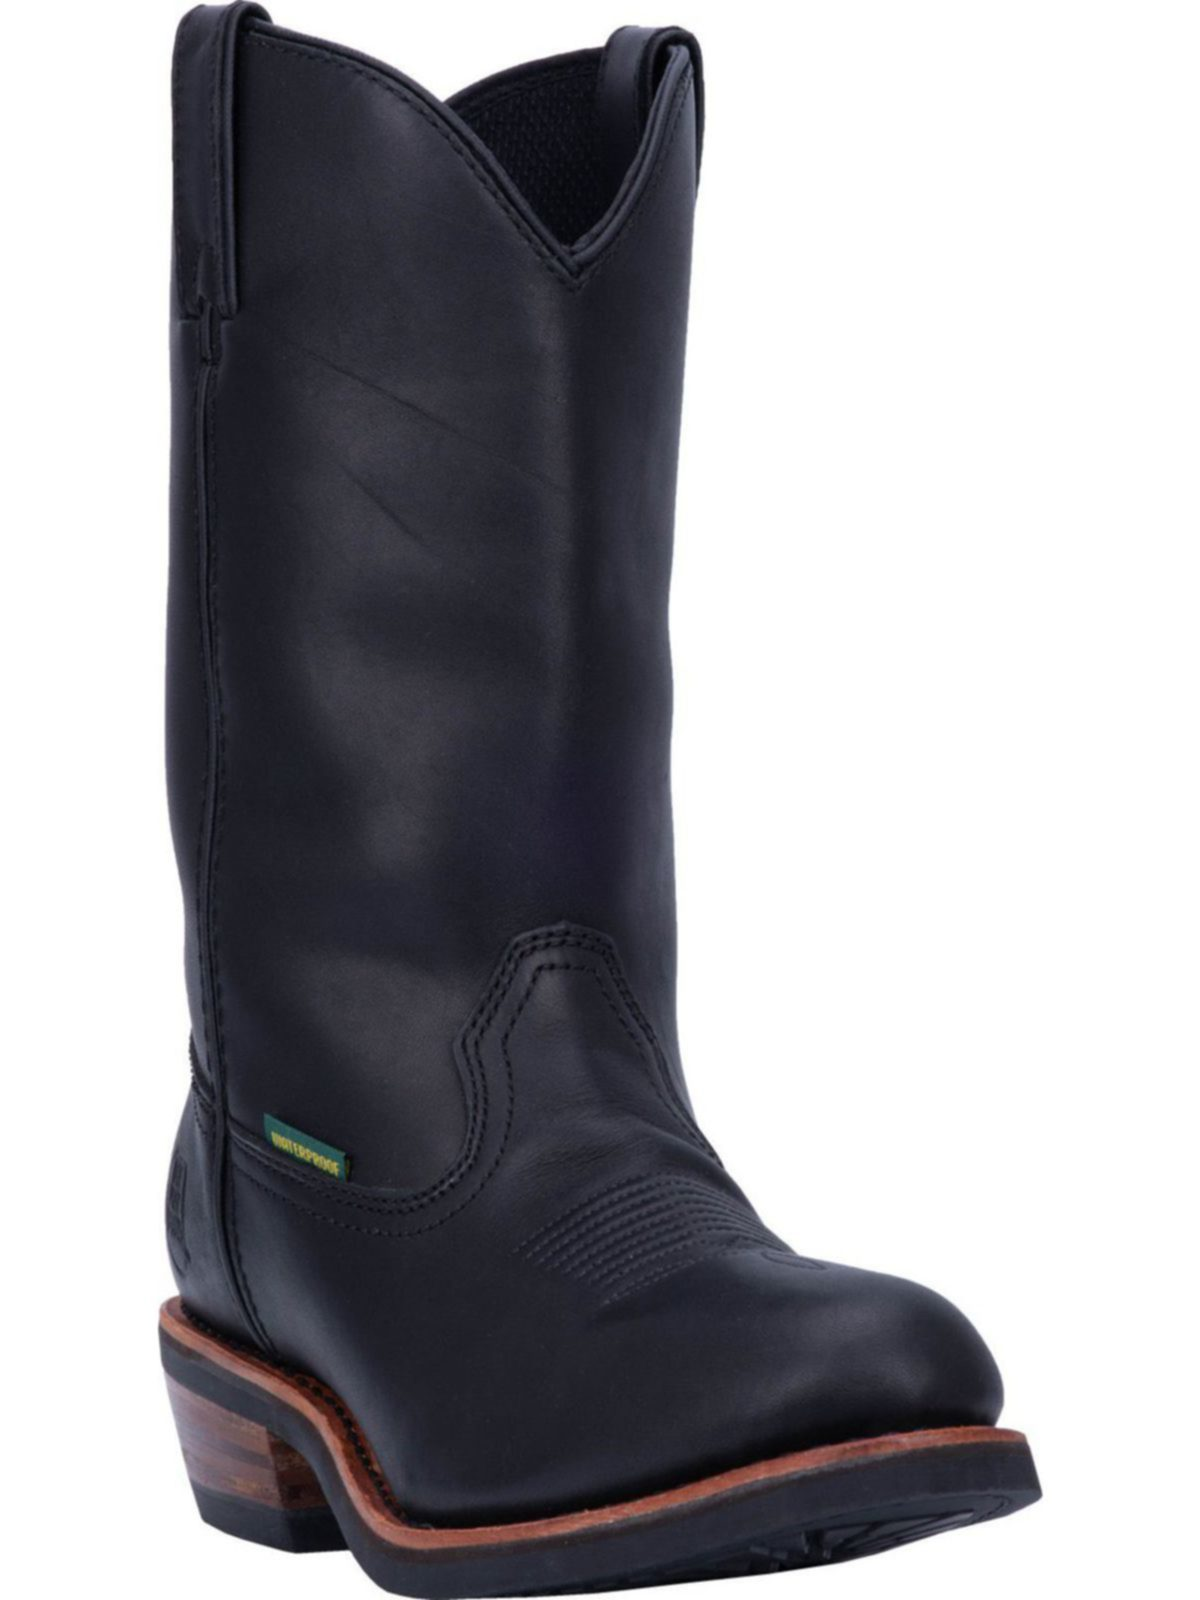 Bootamerica Dan Post Mens Albuquerque Waterproof Black